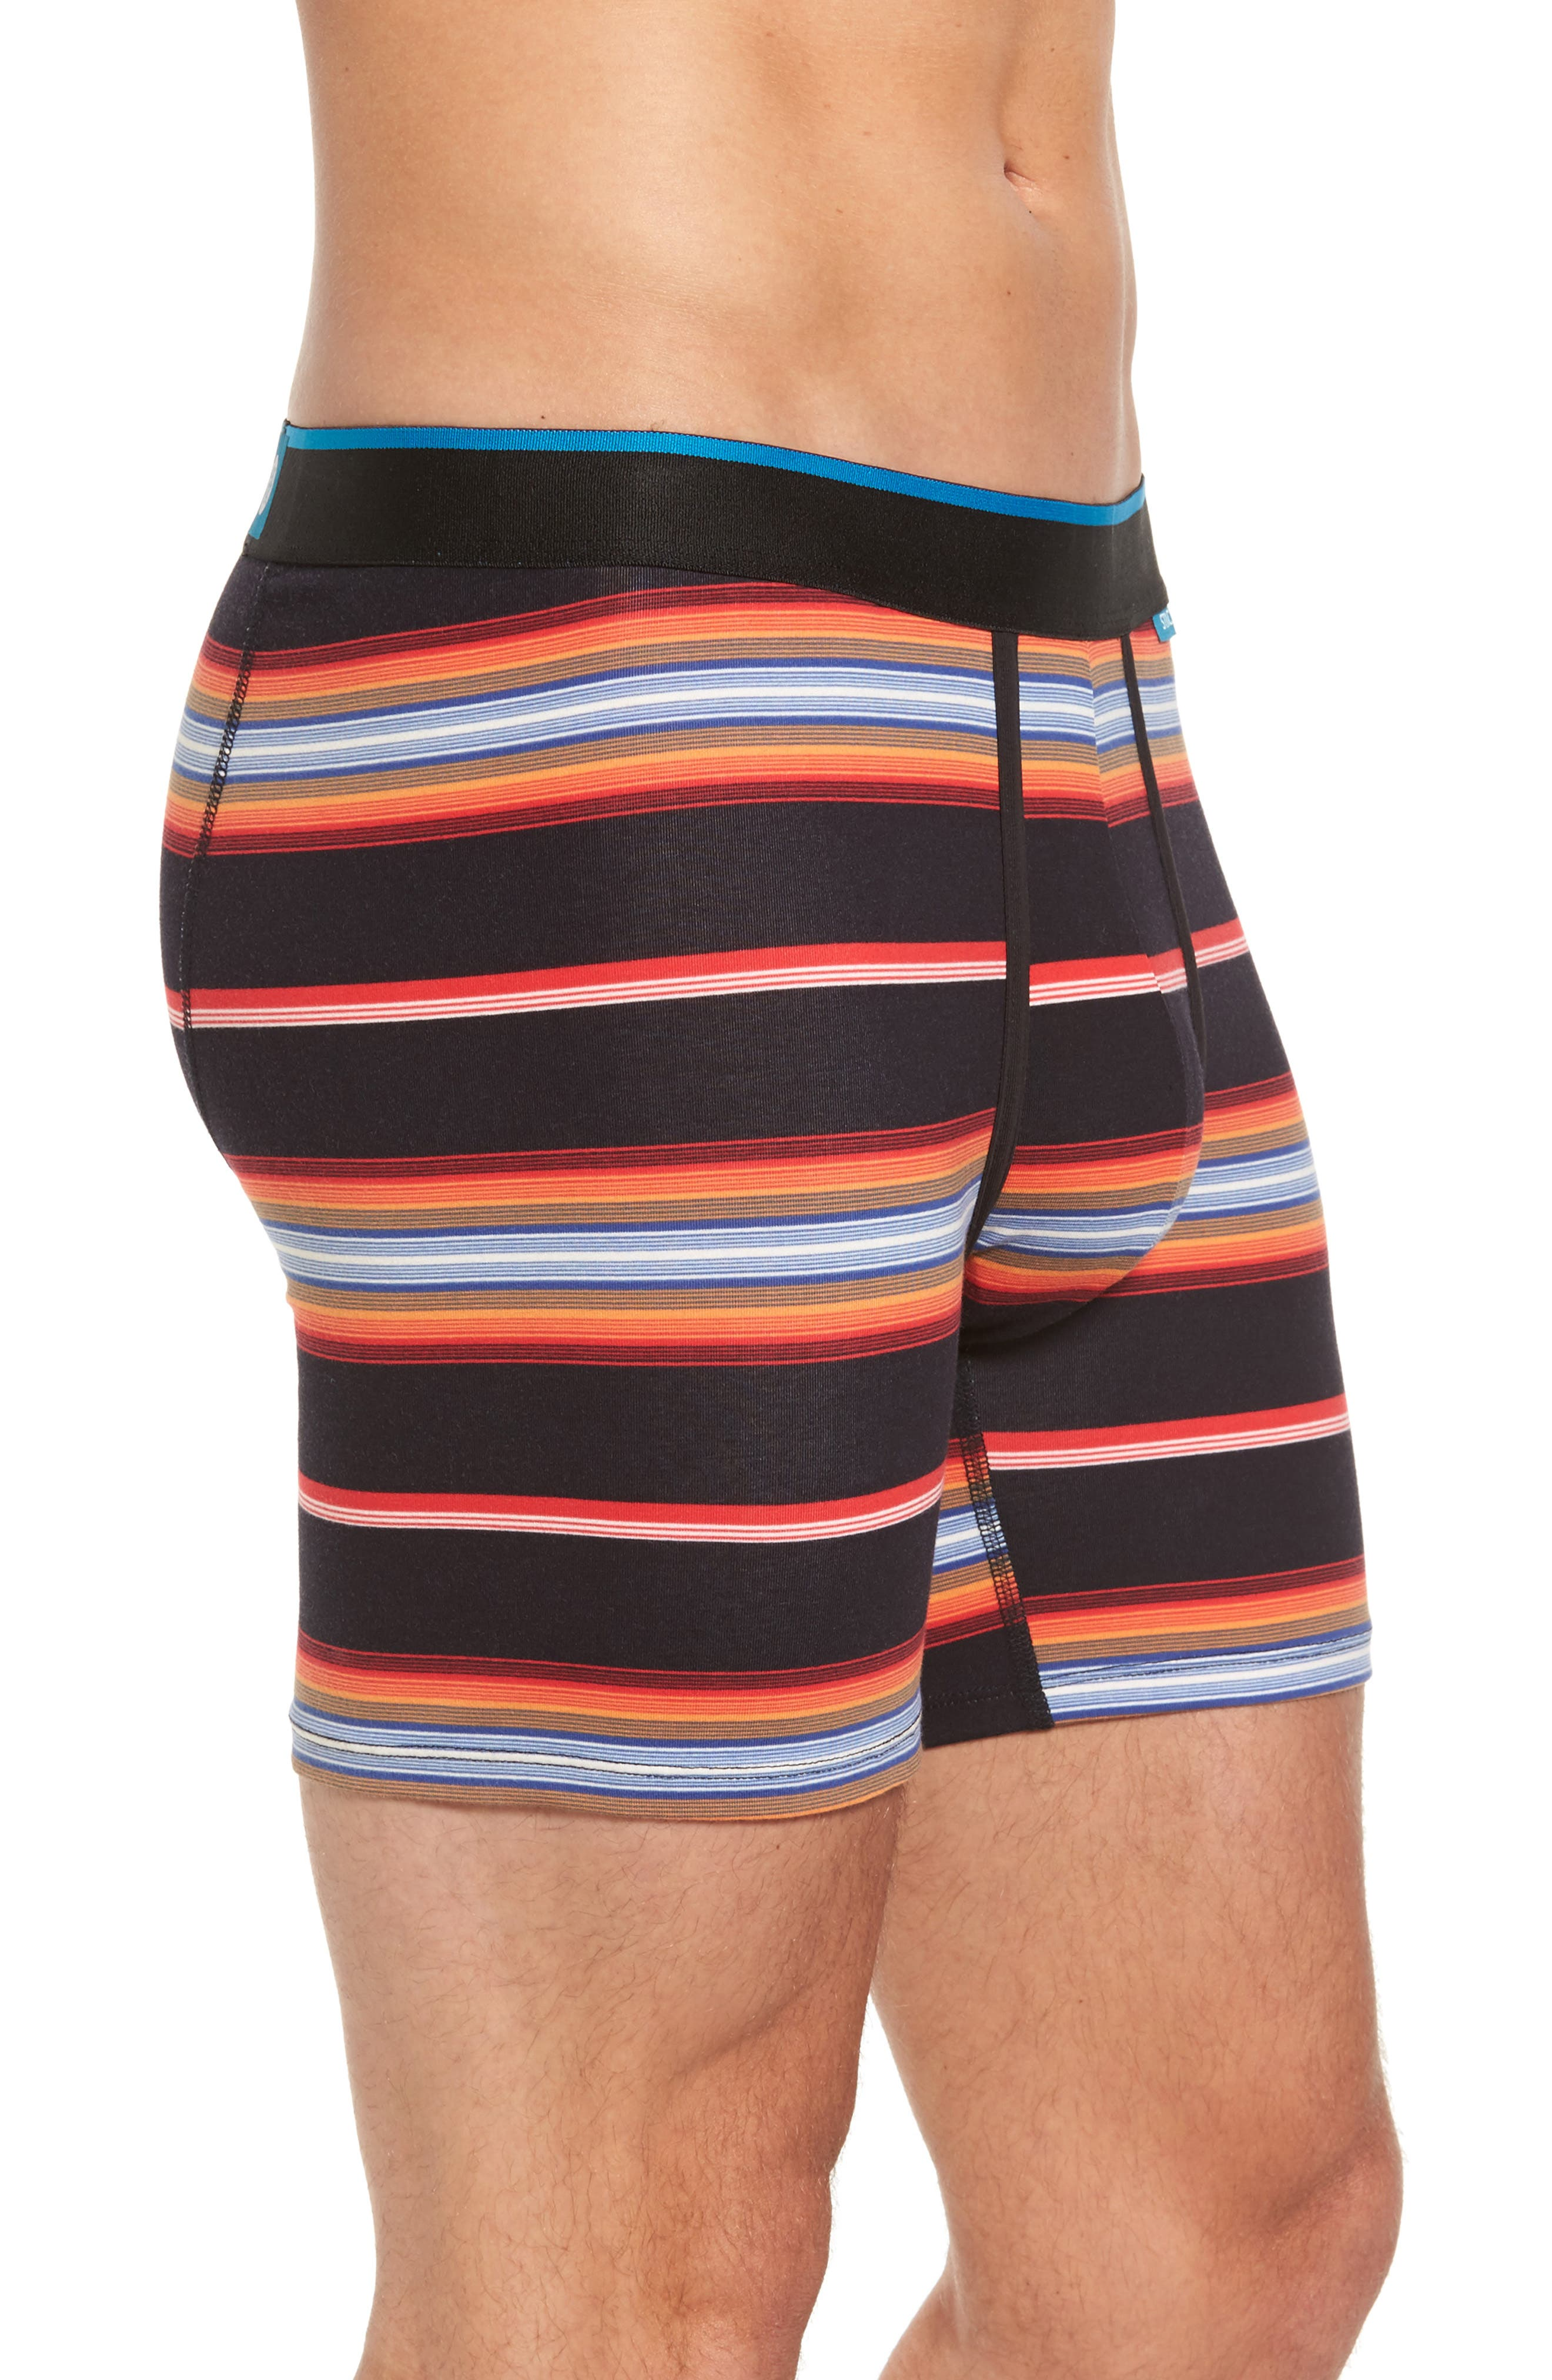 1979 Stripe Boxer Briefs,                             Alternate thumbnail 5, color,